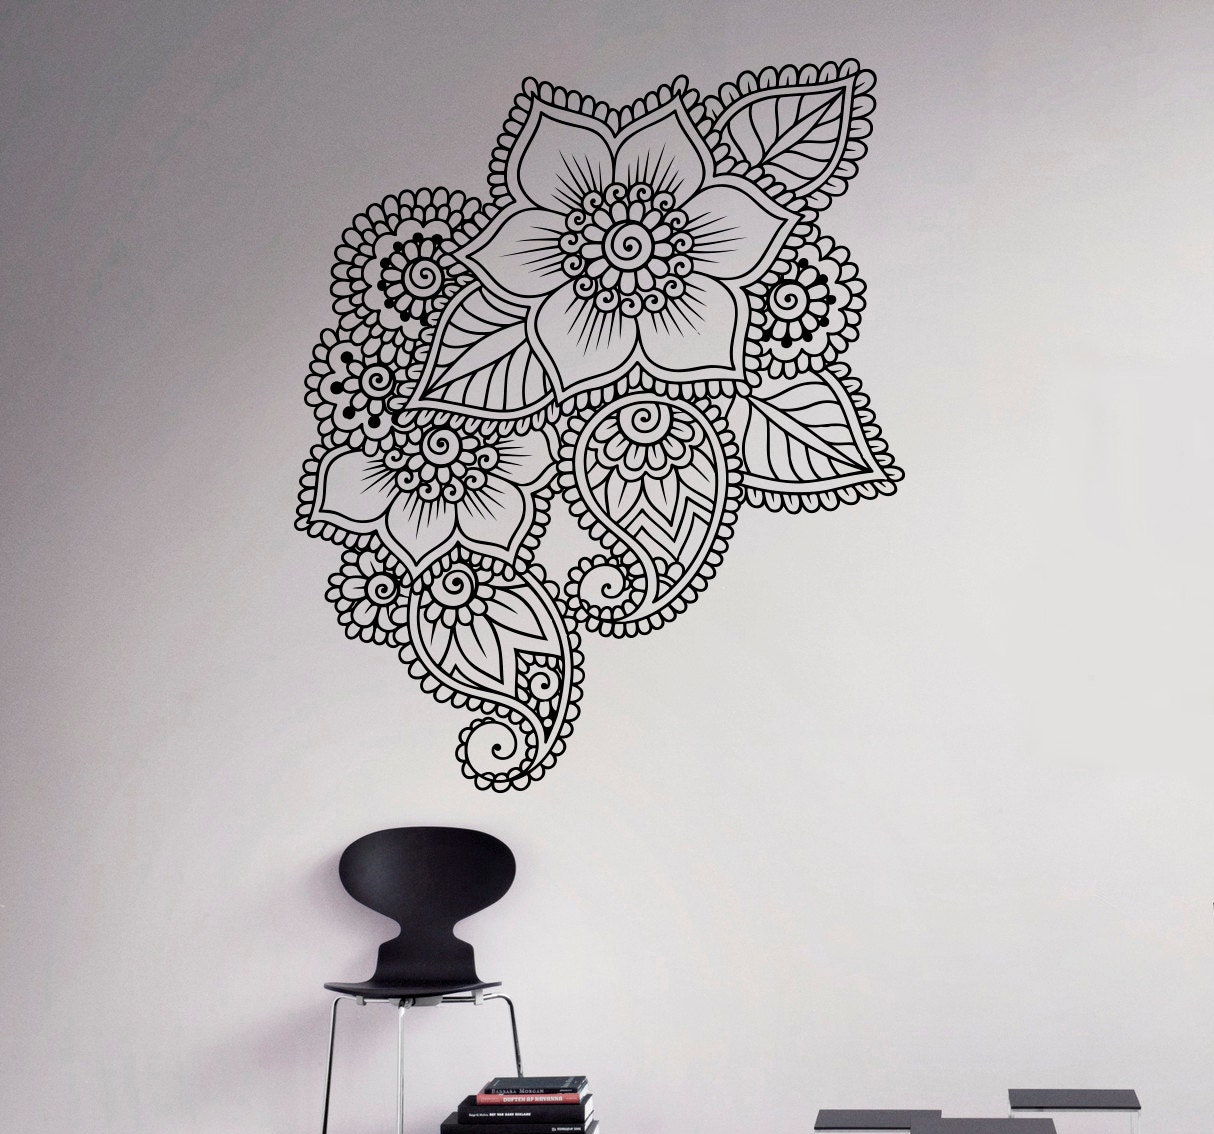 Mehndi Wall Decoration : Abstract flowers mehndi wall vinyl decal henna indian ornament